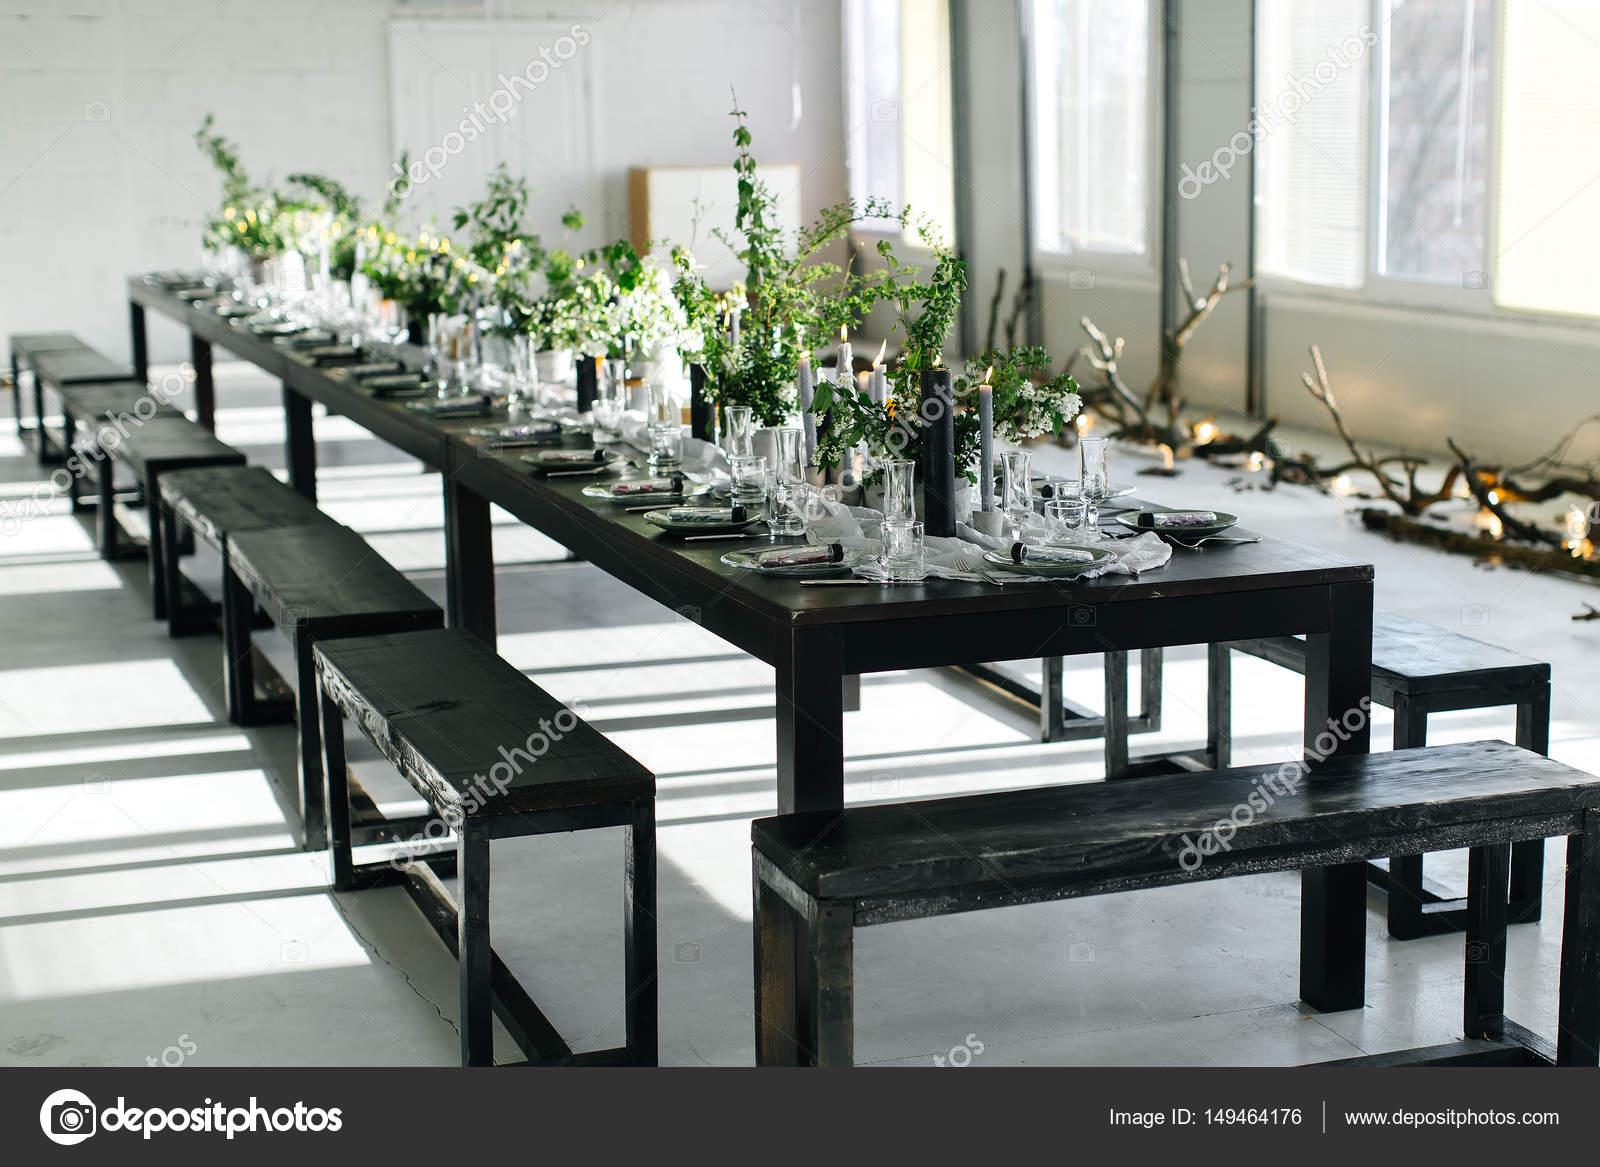 Stylish table loft design room in the loft style black table design room in the loft style black table chairs dishes candles jars with greens photo by savvopuloockgmail dzzzfo